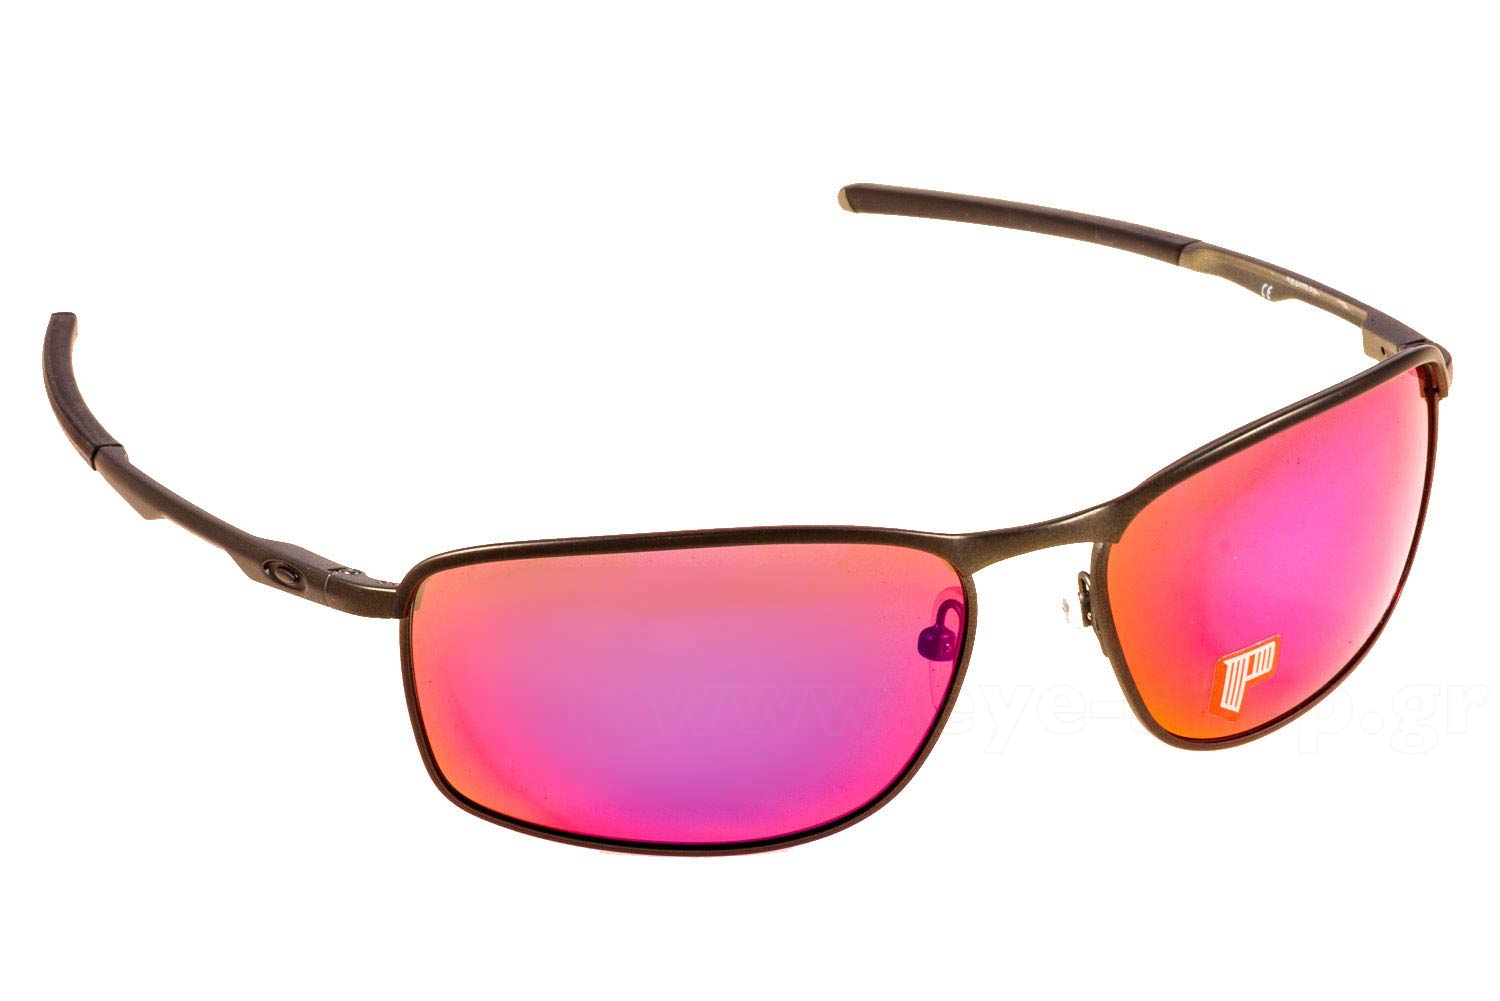 7b53851b1d Enlarge Colors Discontinued. Sunglasses Oakley Conductor 8 4107 04 Carbon  Red iridium Polarized